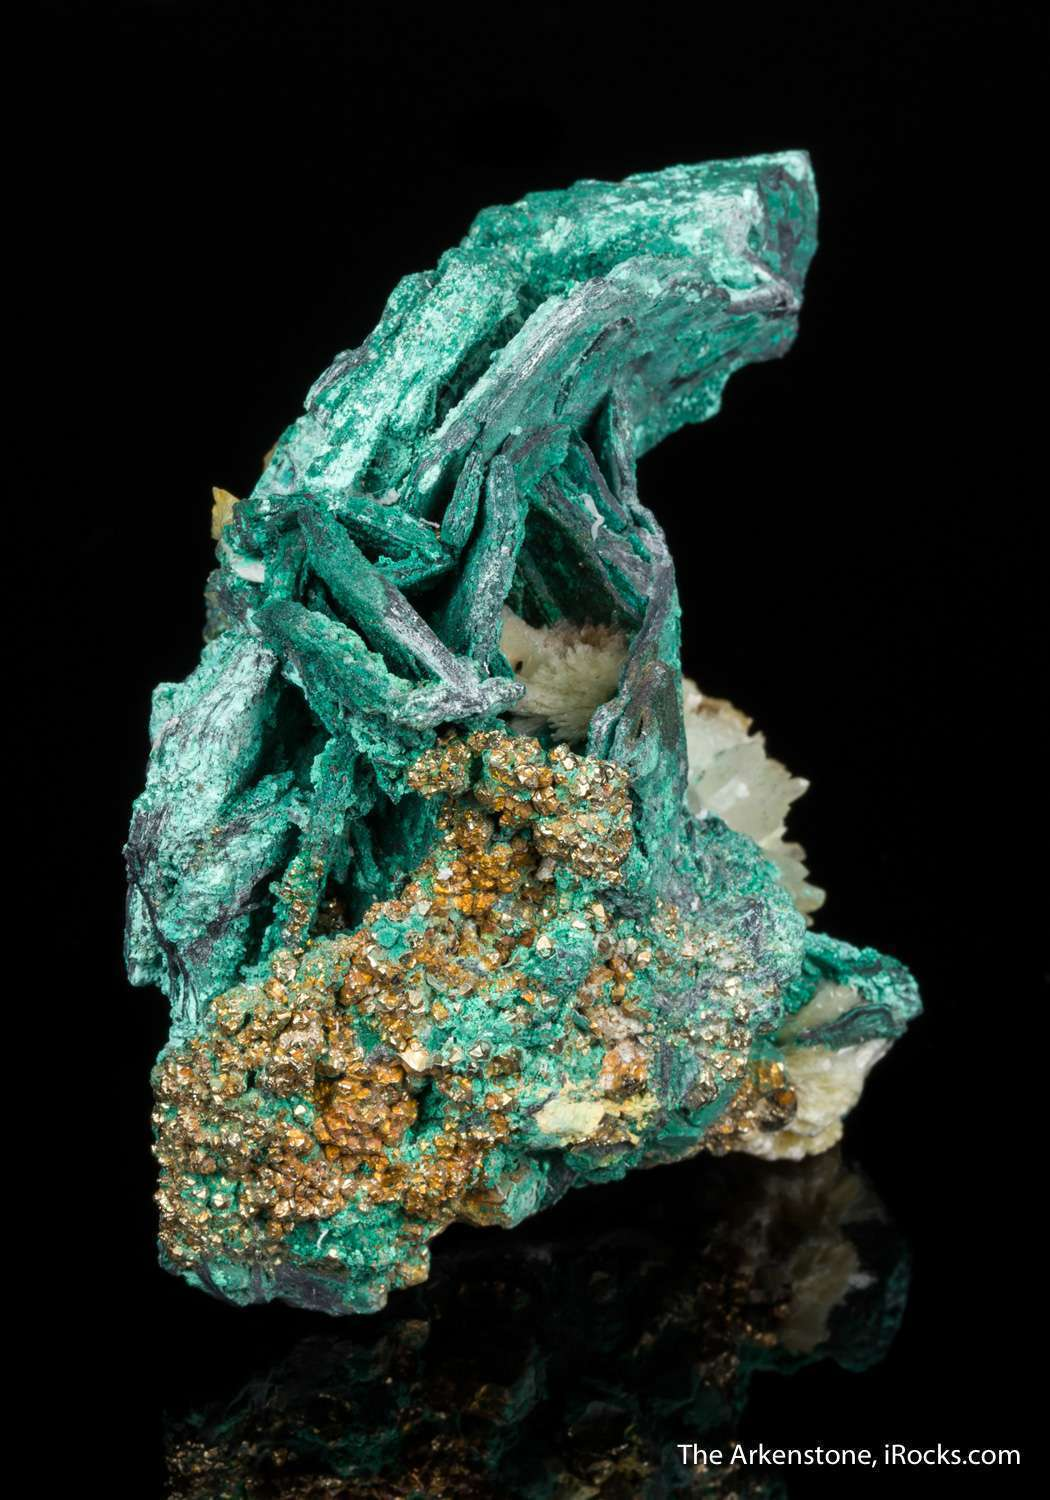 Butte highly collectible locality produced world s finest covellite